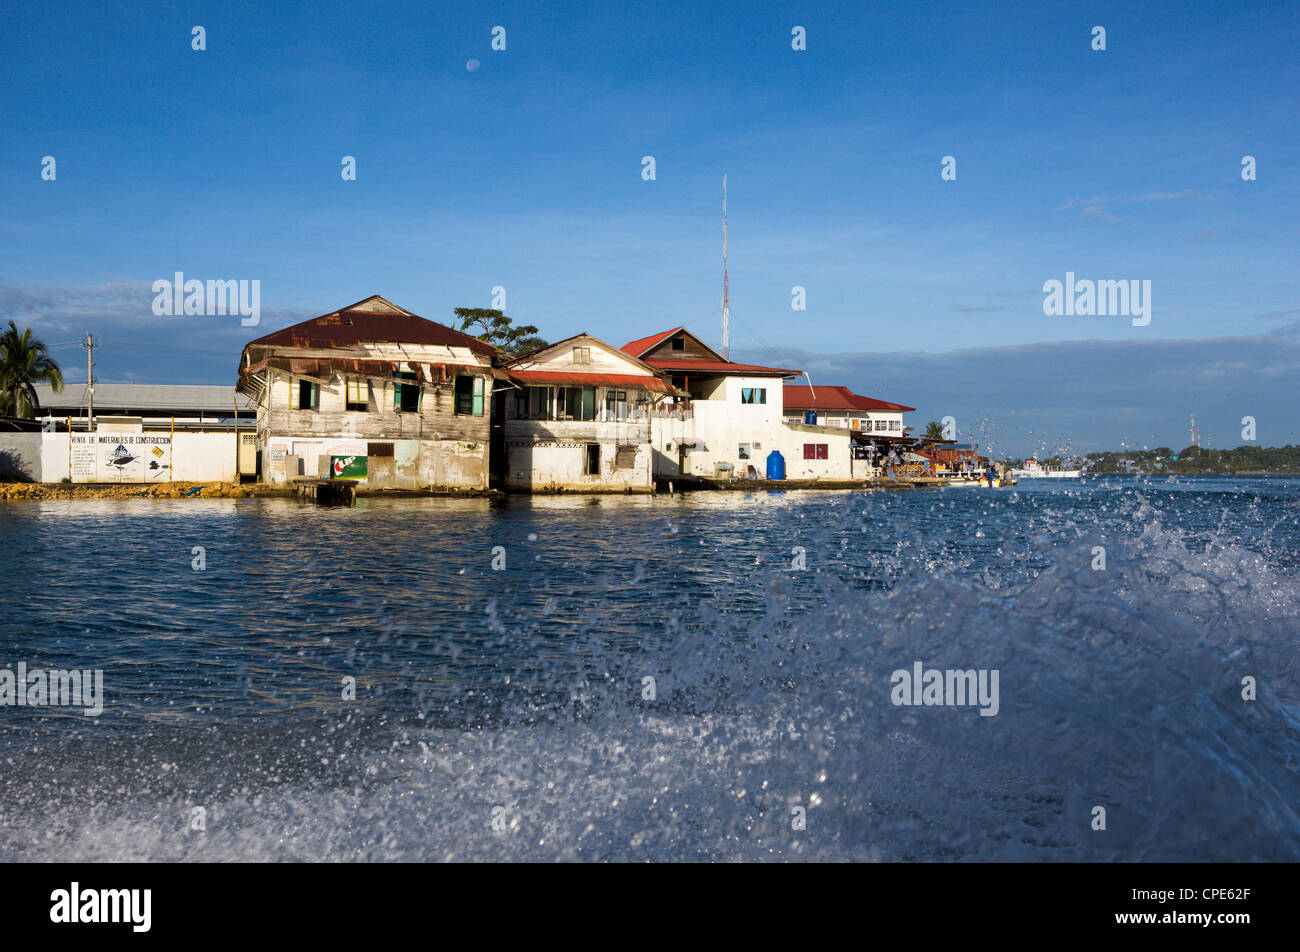 Boat trip past Colon Island in the Bocas del Toro, Panama, Central America - Stock Image